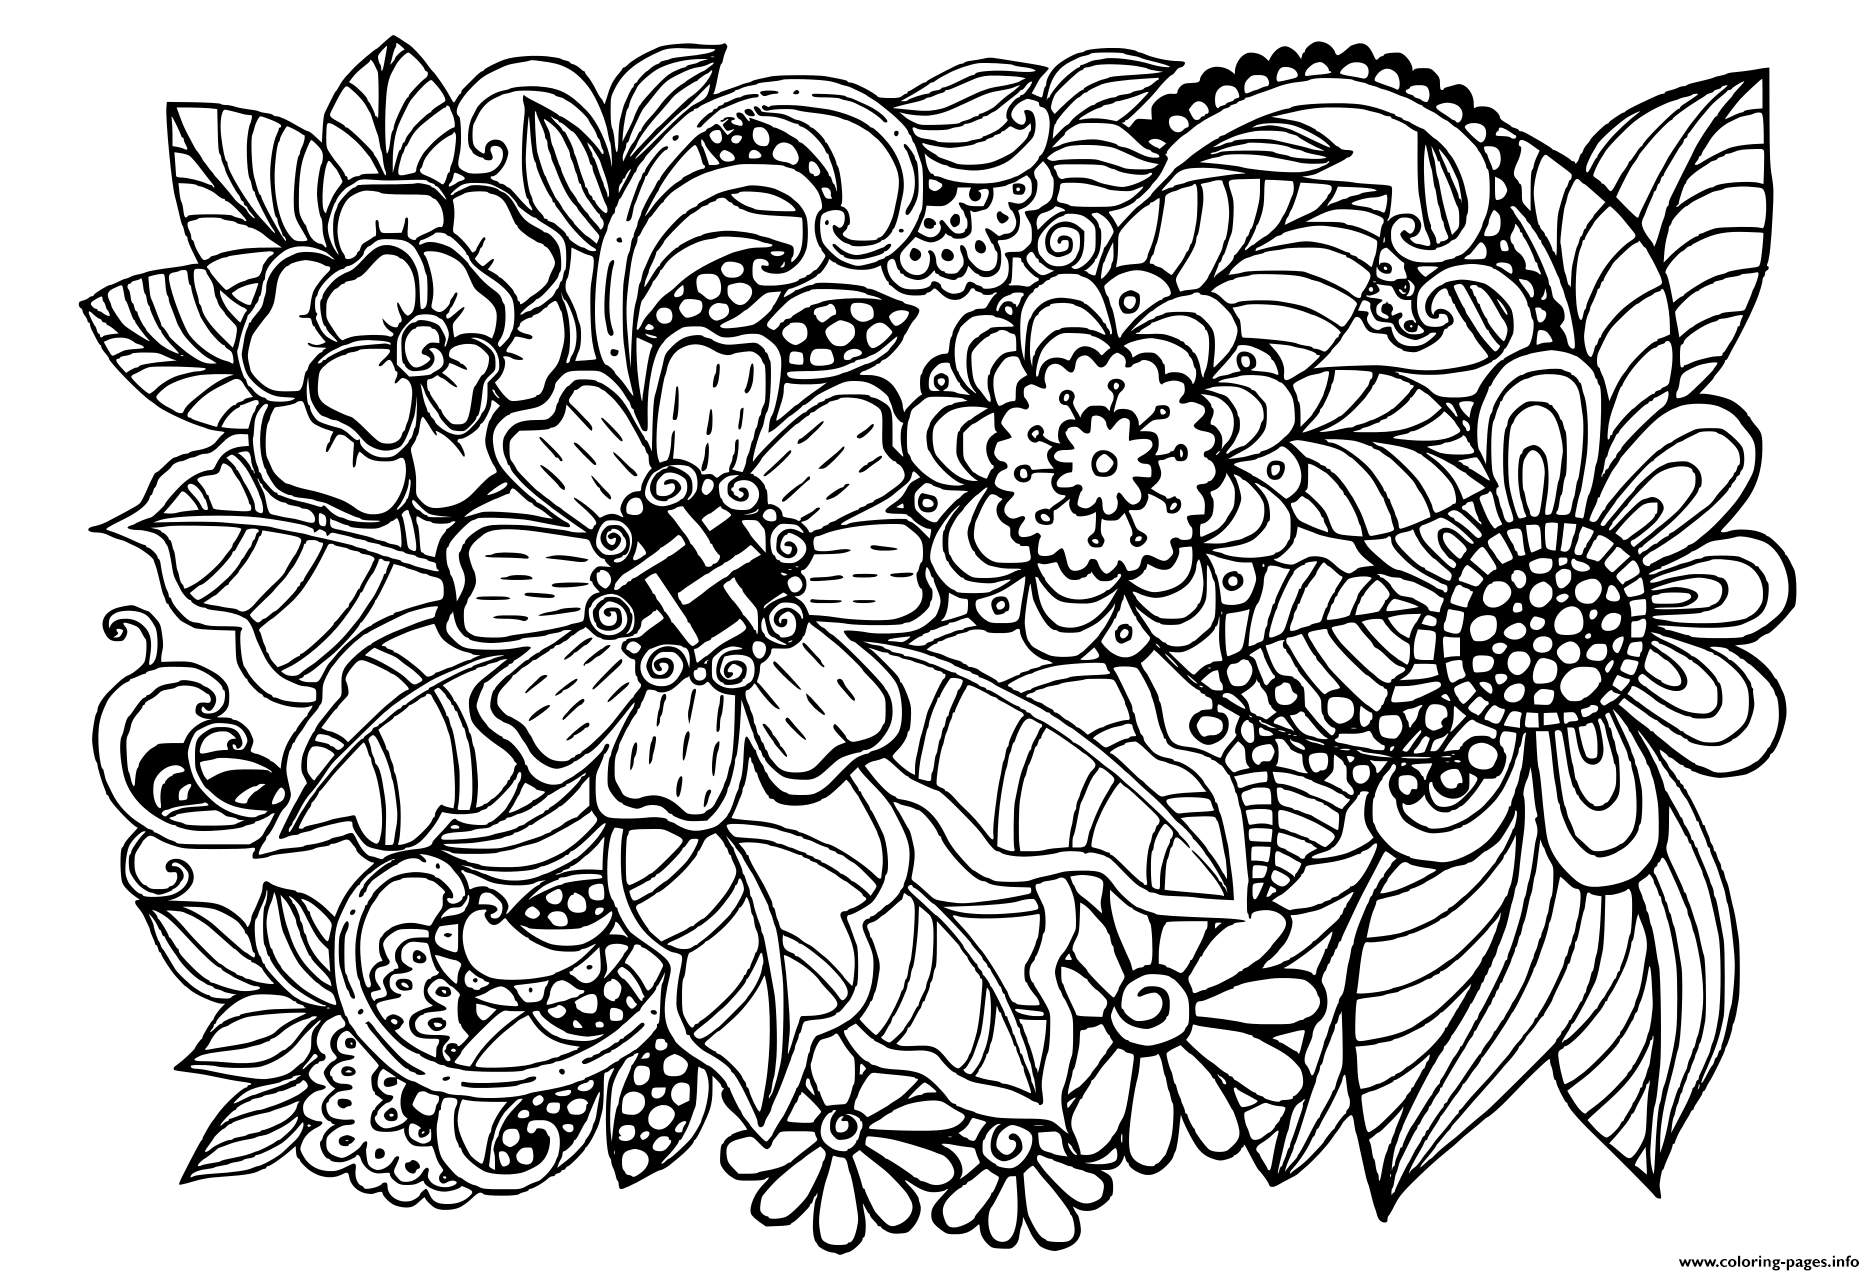 patterns for colouring for adults coloring pages fascinating free geometric coloring pages for colouring adults patterns for